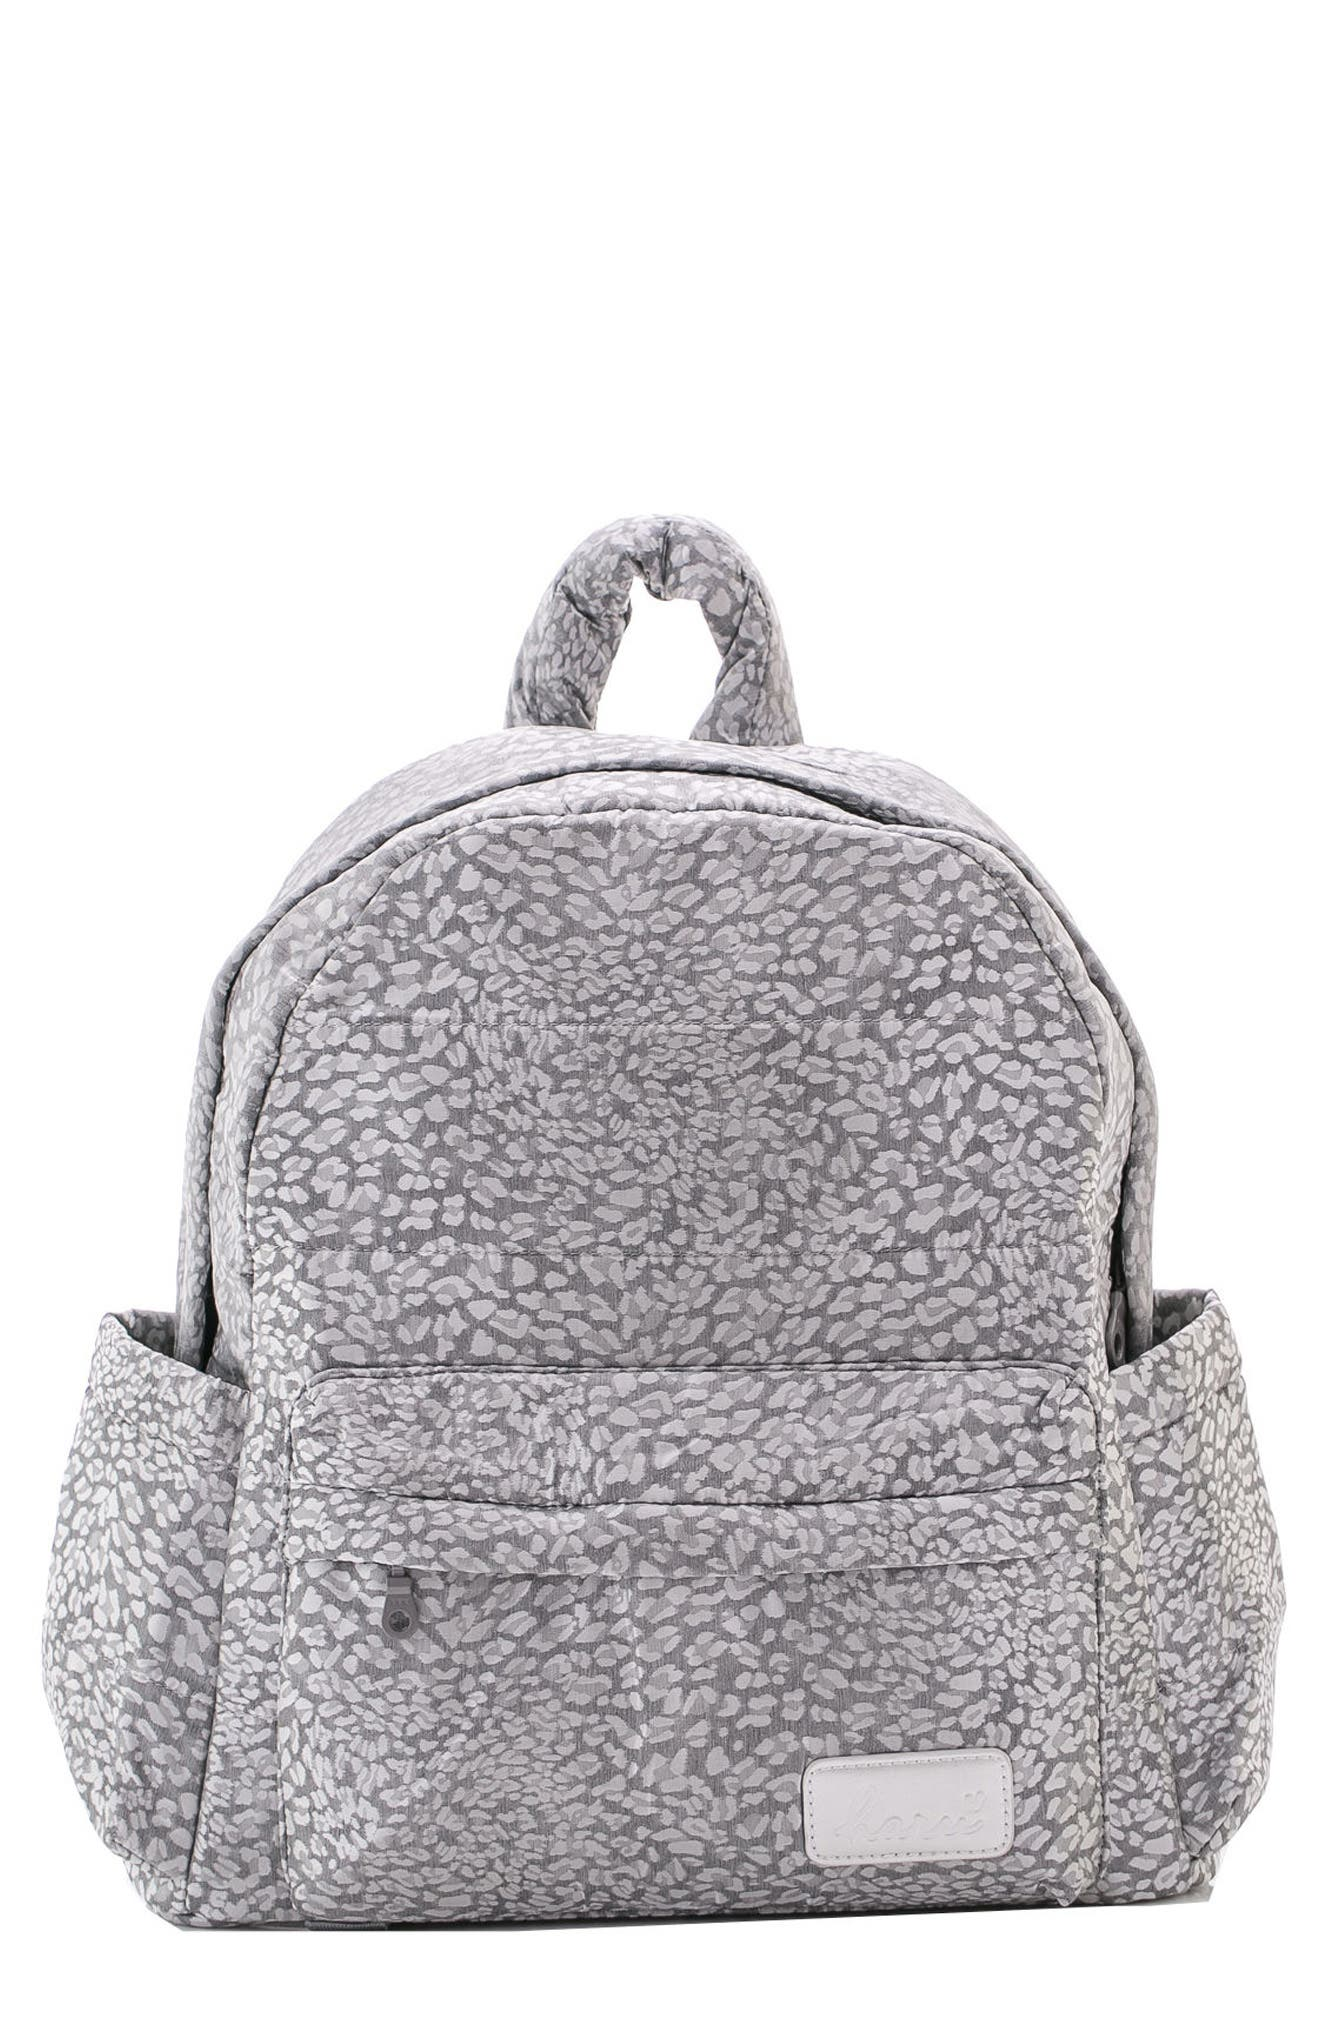 Print Water Repellent Diaper Backpack,                             Main thumbnail 1, color,                             SILVER LEOPARD